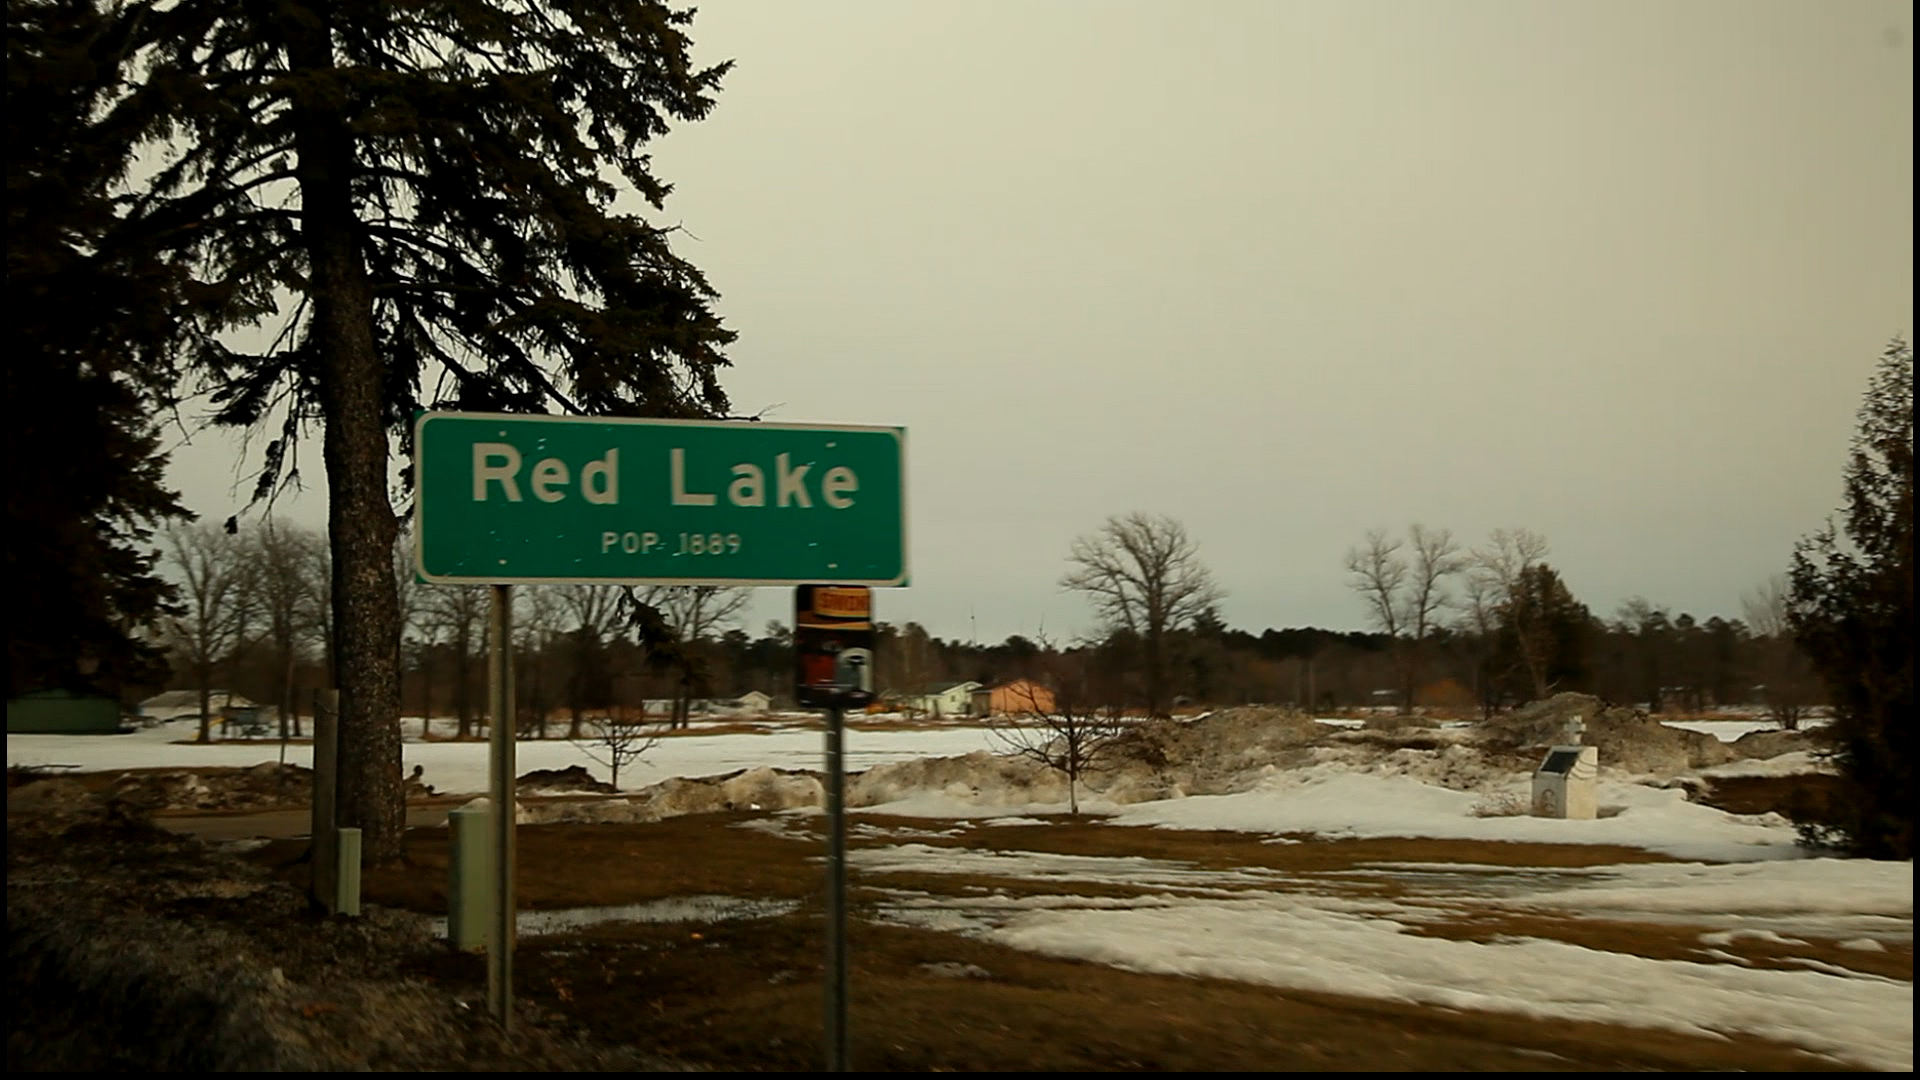 red lake high school shooting A 16-year-old chippewa boy opens fire at a reservation school in minnesota sections /archives/video/march-22-2005-red-lake-hs-massacre.